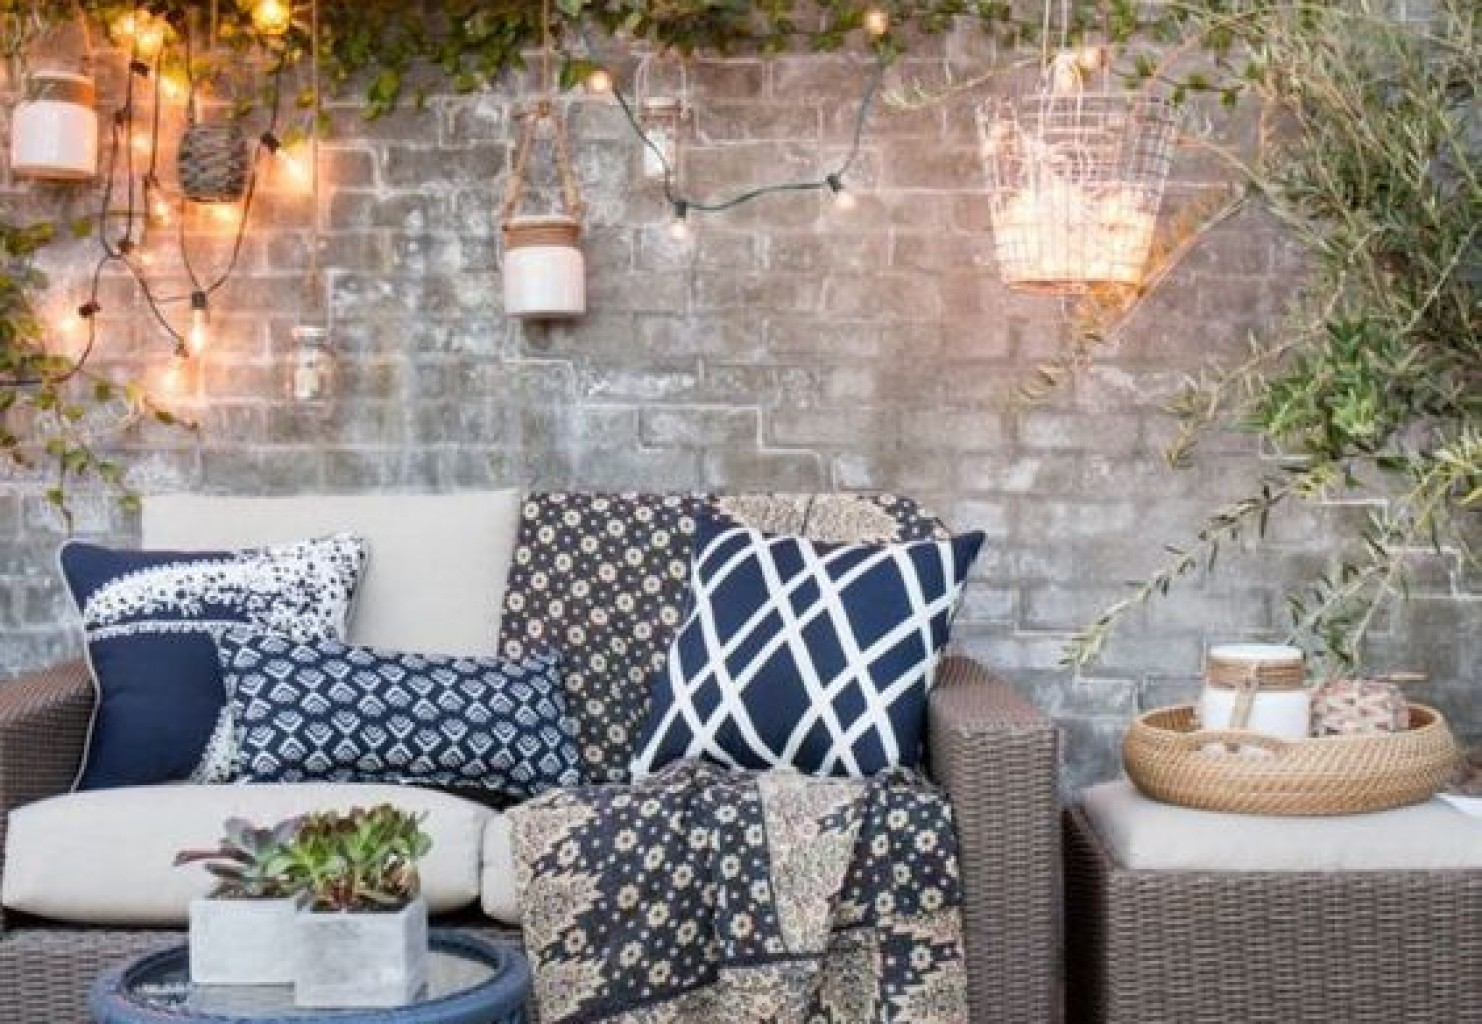 Catchy Different Pillows Styles Ways To Spruce Up Your Backyard Spring Home Dynamics Backyard Living Source Boise Backyard Living Source Boise Id Upgrade Your Seating outdoor Backyard Living Source